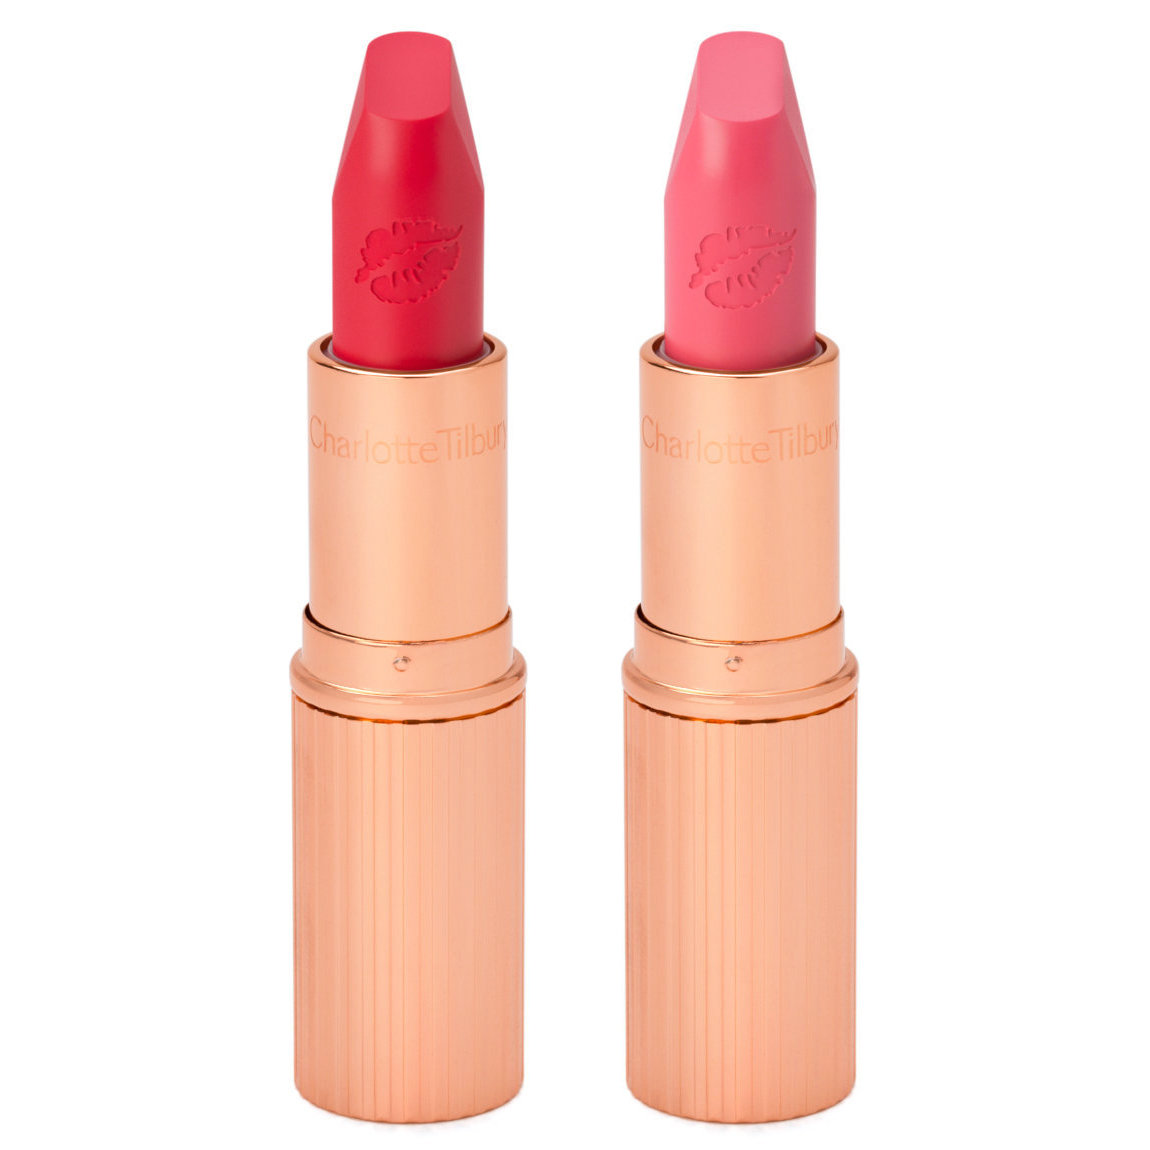 Save 30% on Hot Lips in Electric Poppy and Bosworth's Beauty